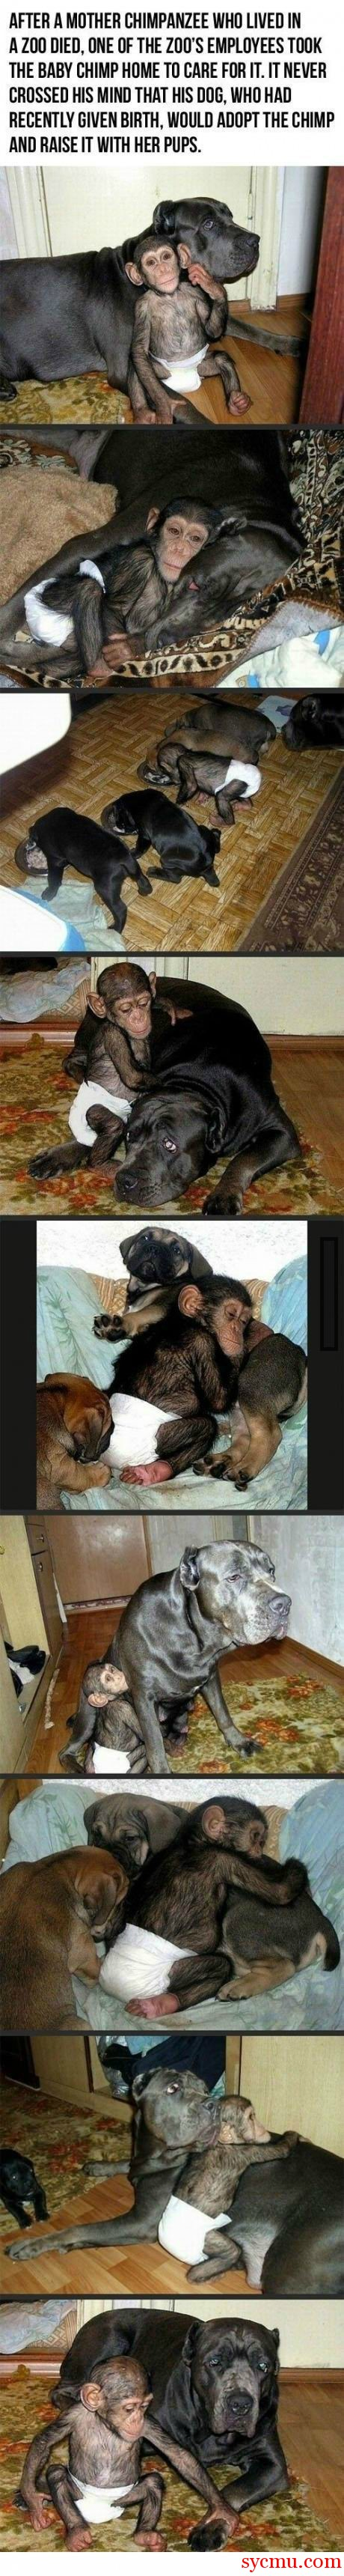 Dog adopts Chimp